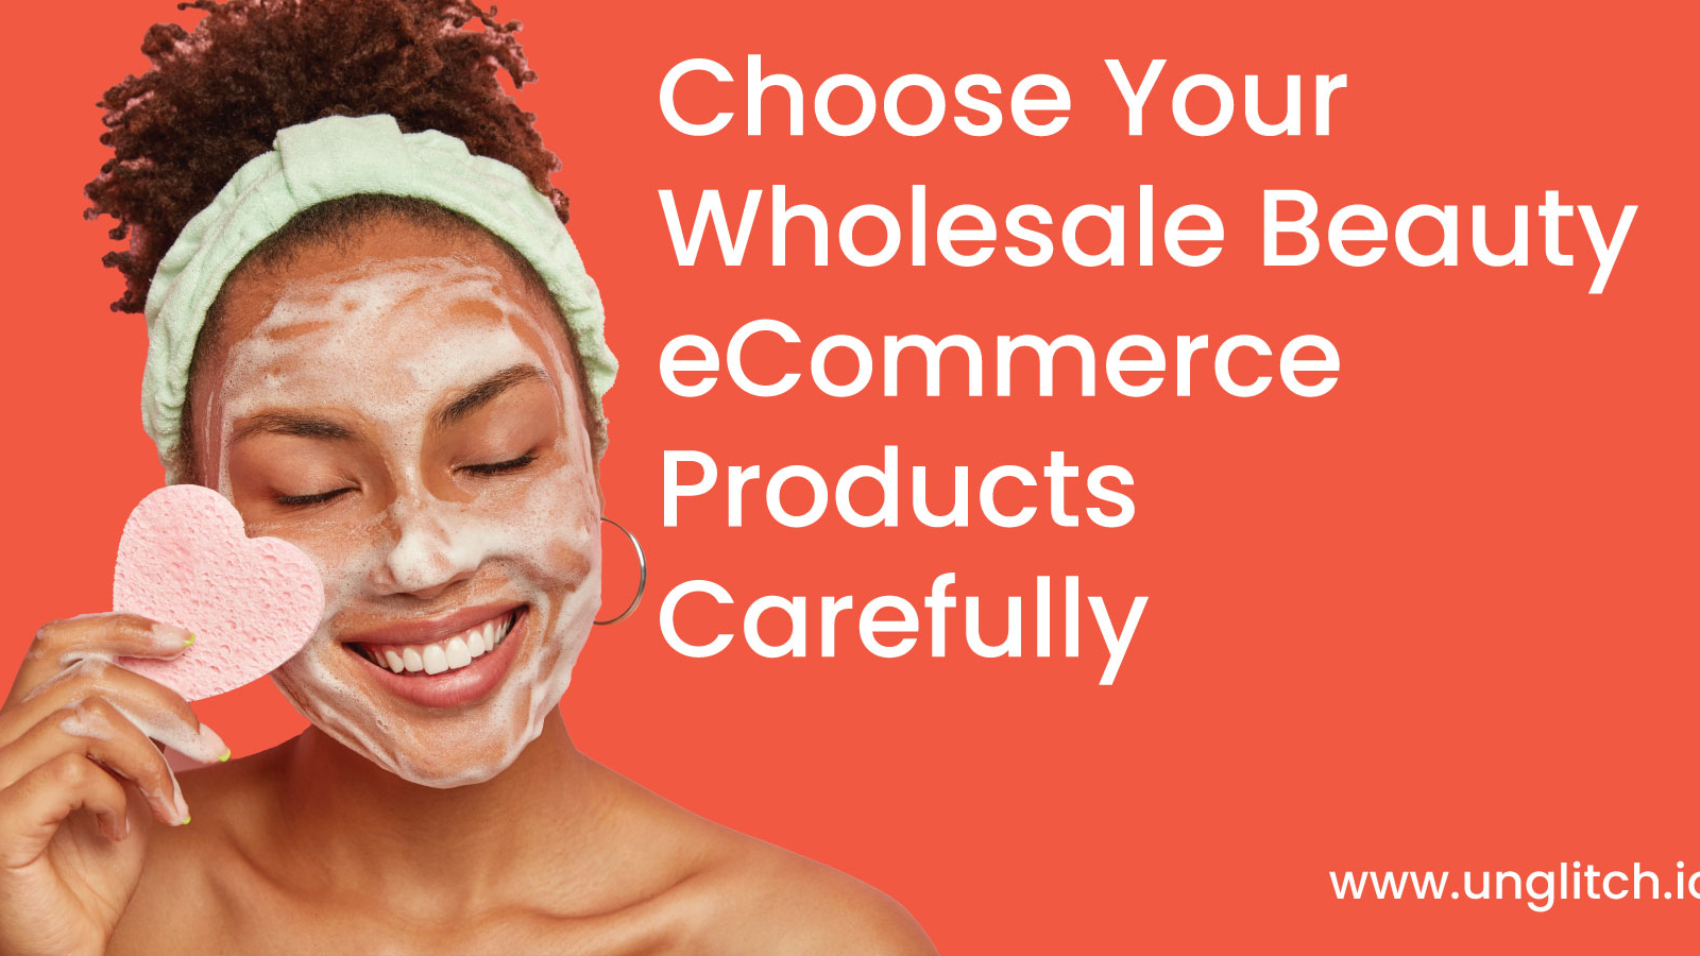 Choose-Your-Wholesale-Beauty-eCommerce-Products-Carefully